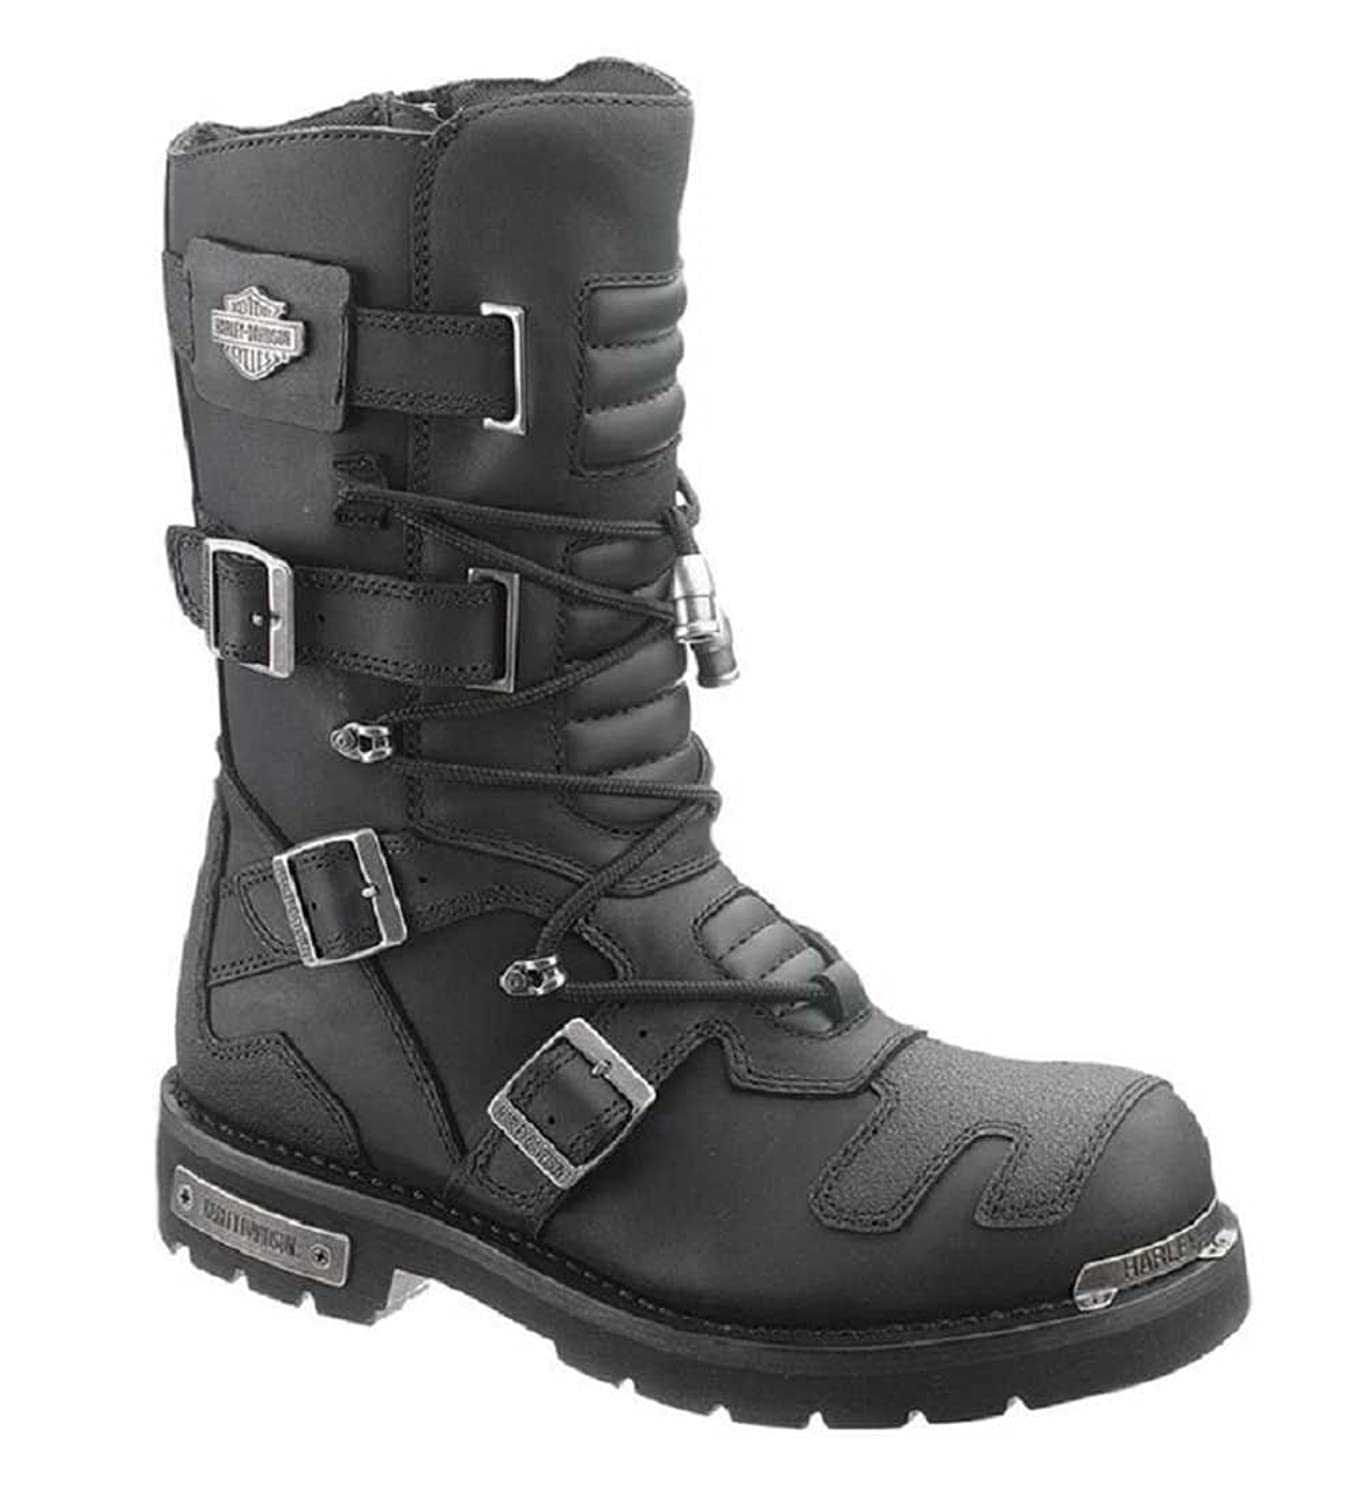 Men's Black Harley-Davidson Axel Motorcycle Riding Boots - DeluxeAdultCostumes.com